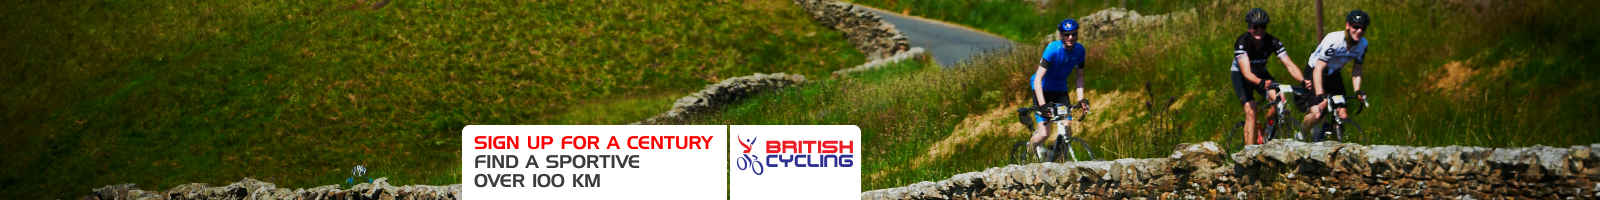 Find sportives over 100km with British Cycling events